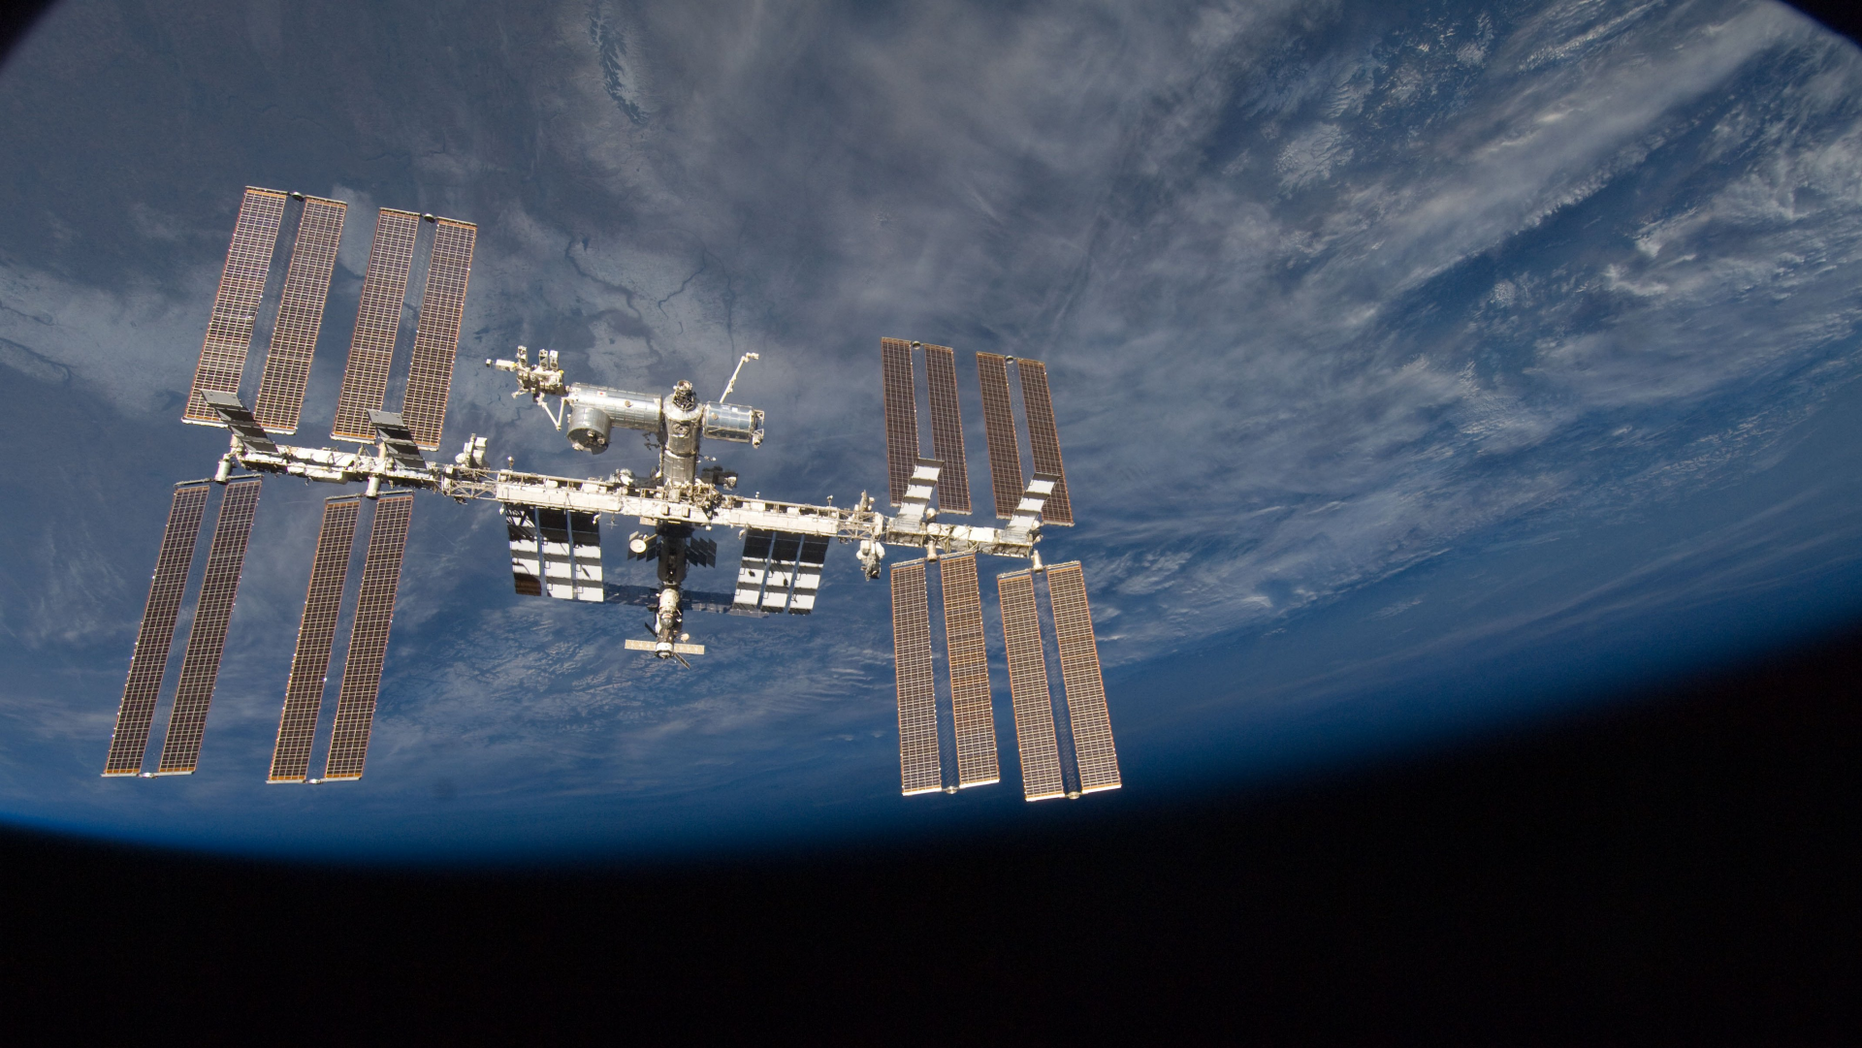 The International Space Station has been in orbit for two decades.